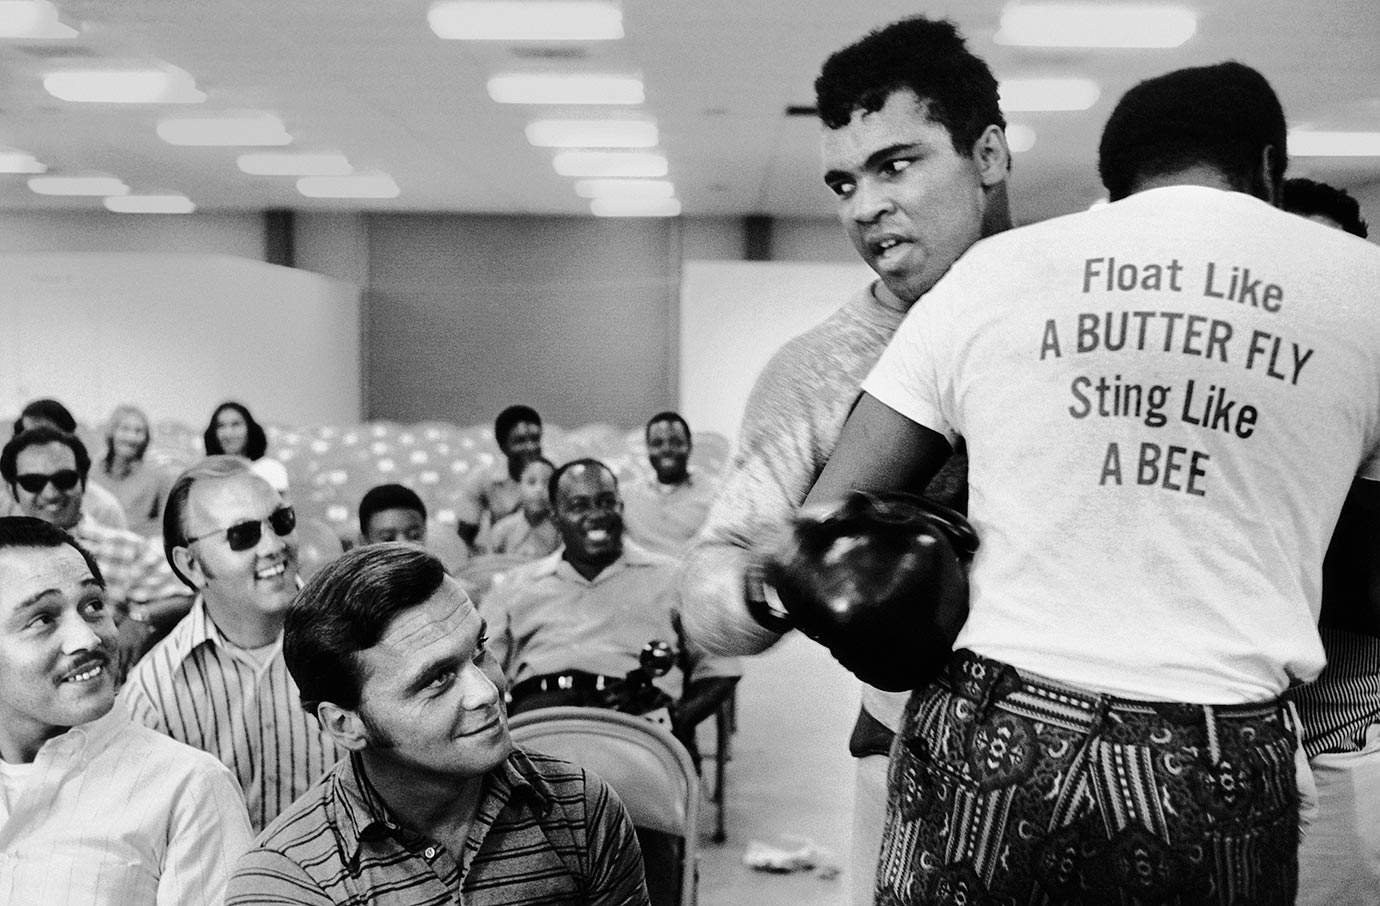 For those sportswriters lucky enough to cover Ali on a regular basis, each day brought surprises and, more often than not, plenty of laughs. of Trainer Drew Bundini Brown helps Ali train for his fight against Ellis. Ali won the bout by technical knockout in the 12th round to claim the vacant NABF heavyweight title.